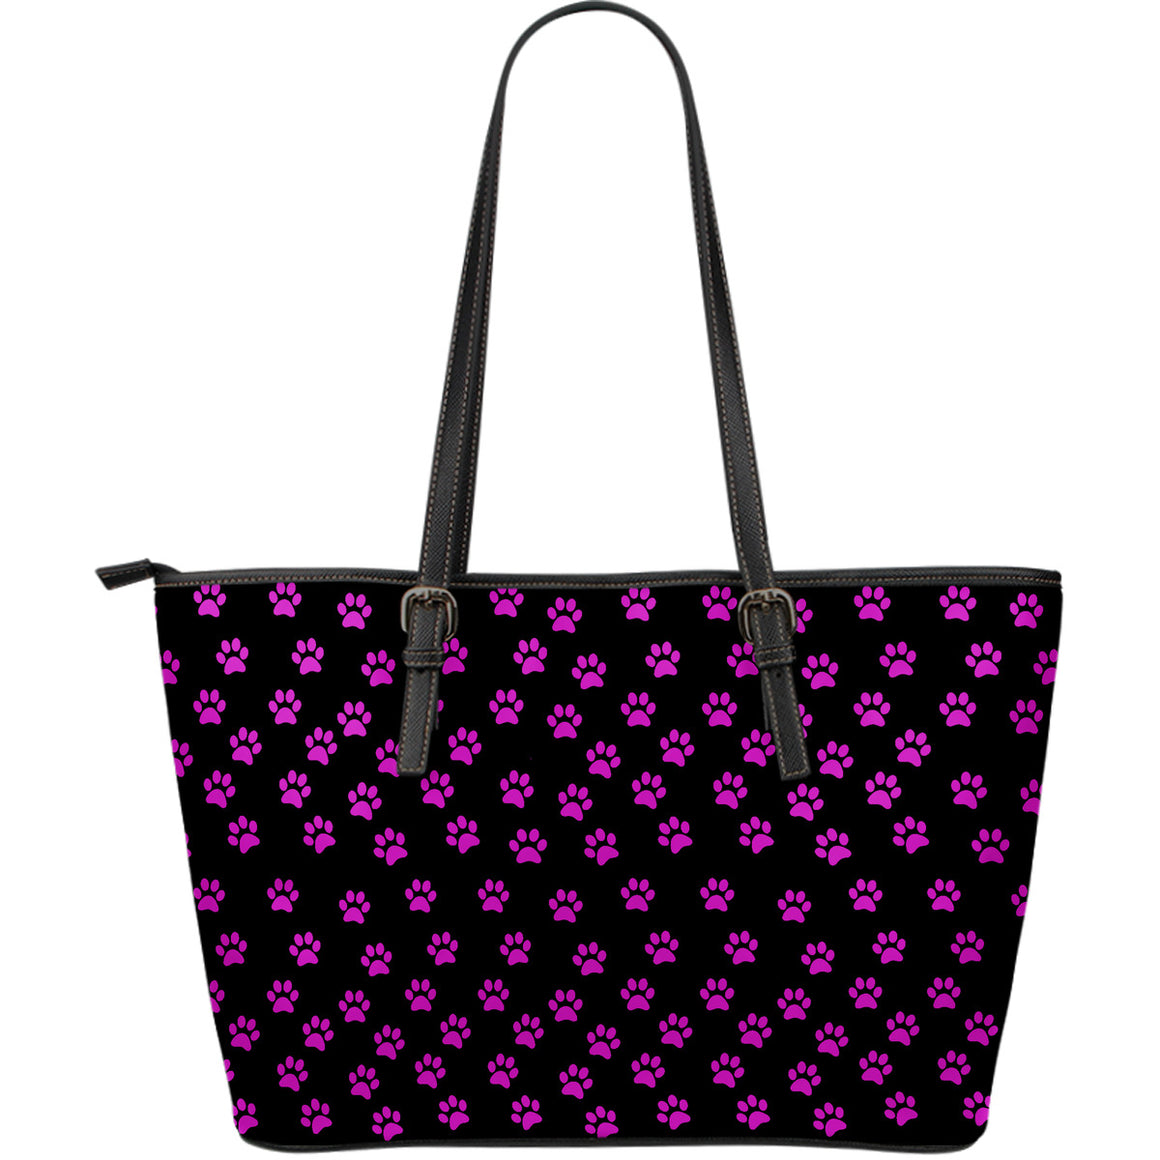 Paw Prints Large Leather Tote